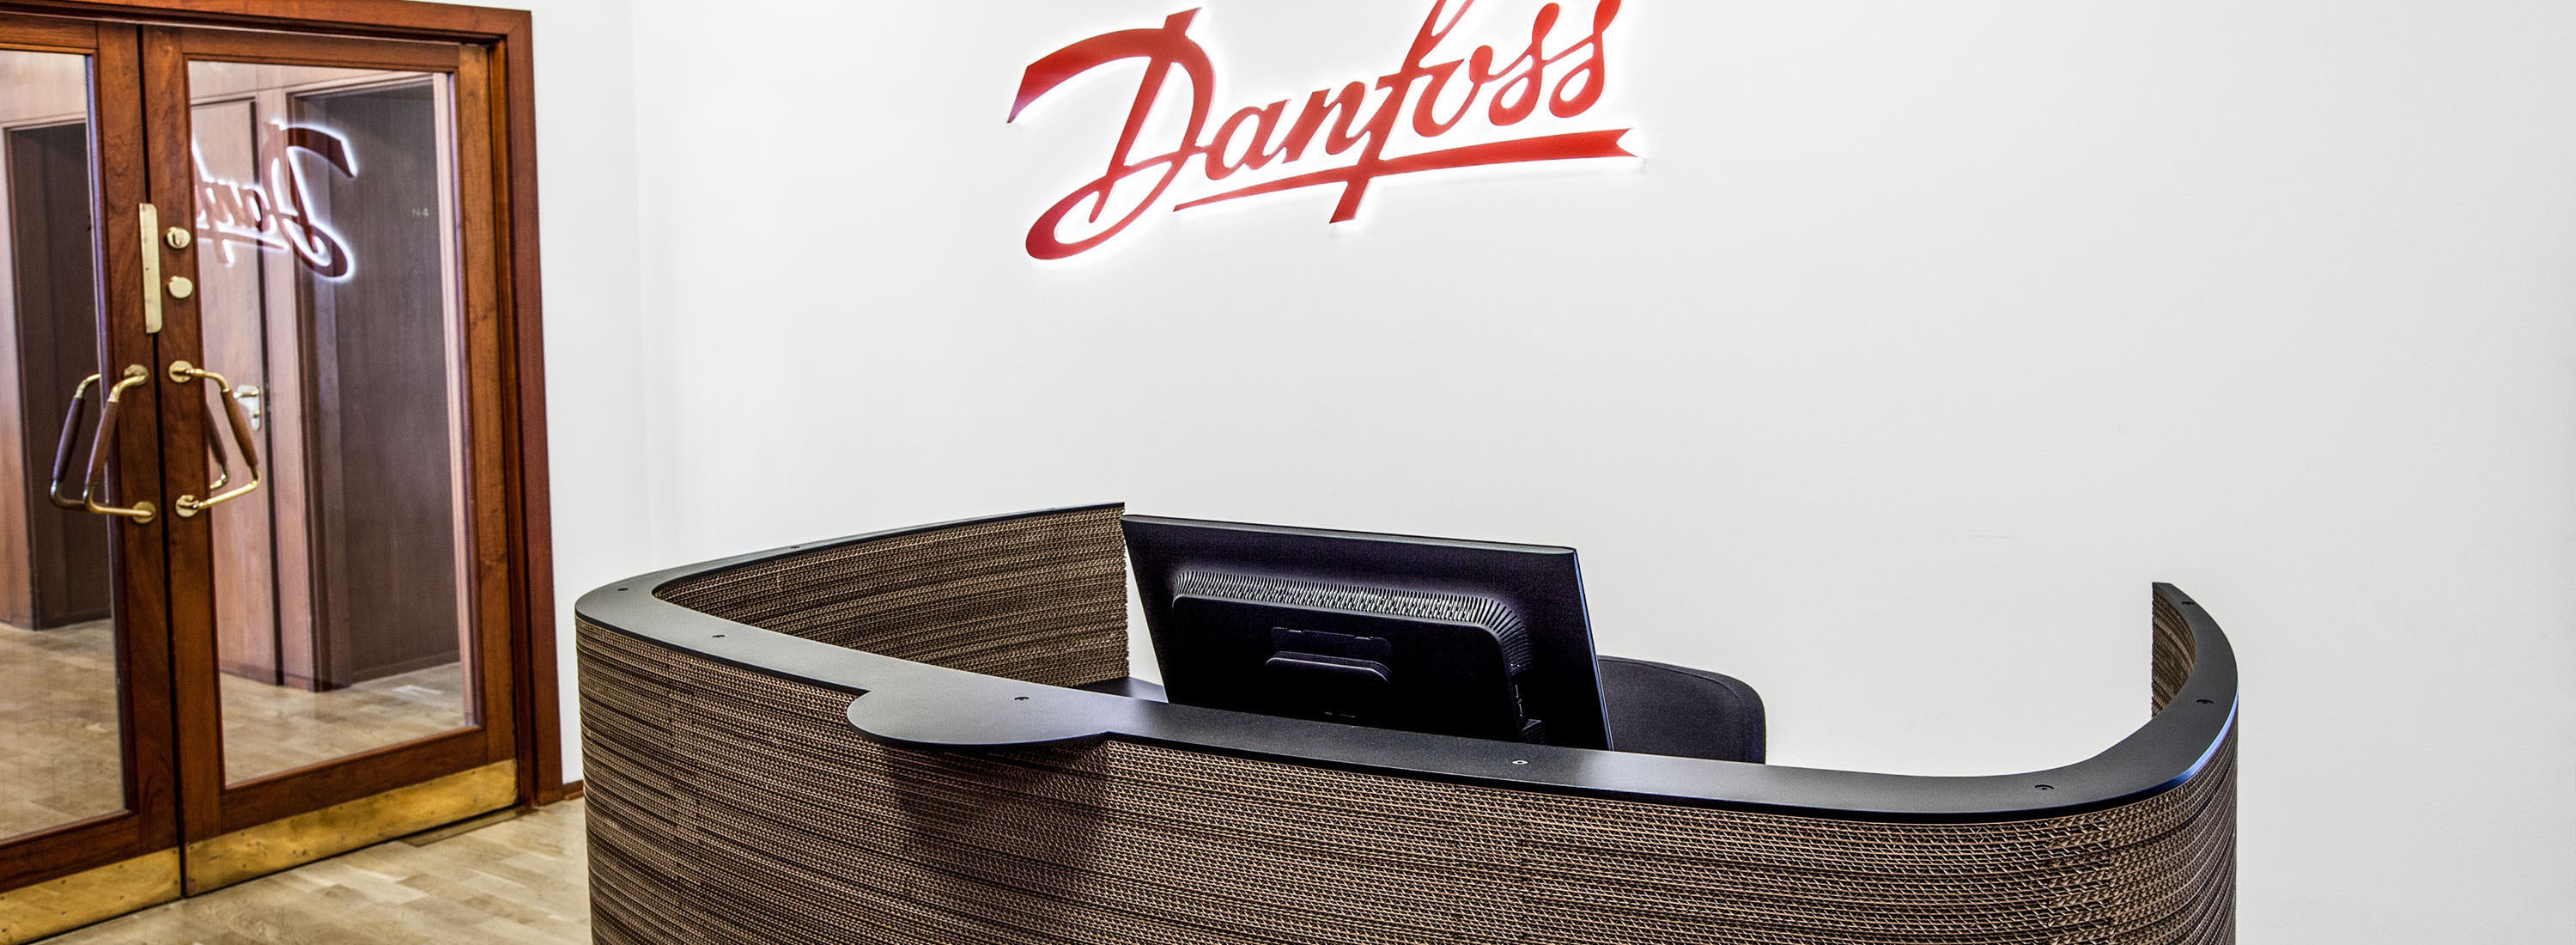 Impact reception hos Danfoss